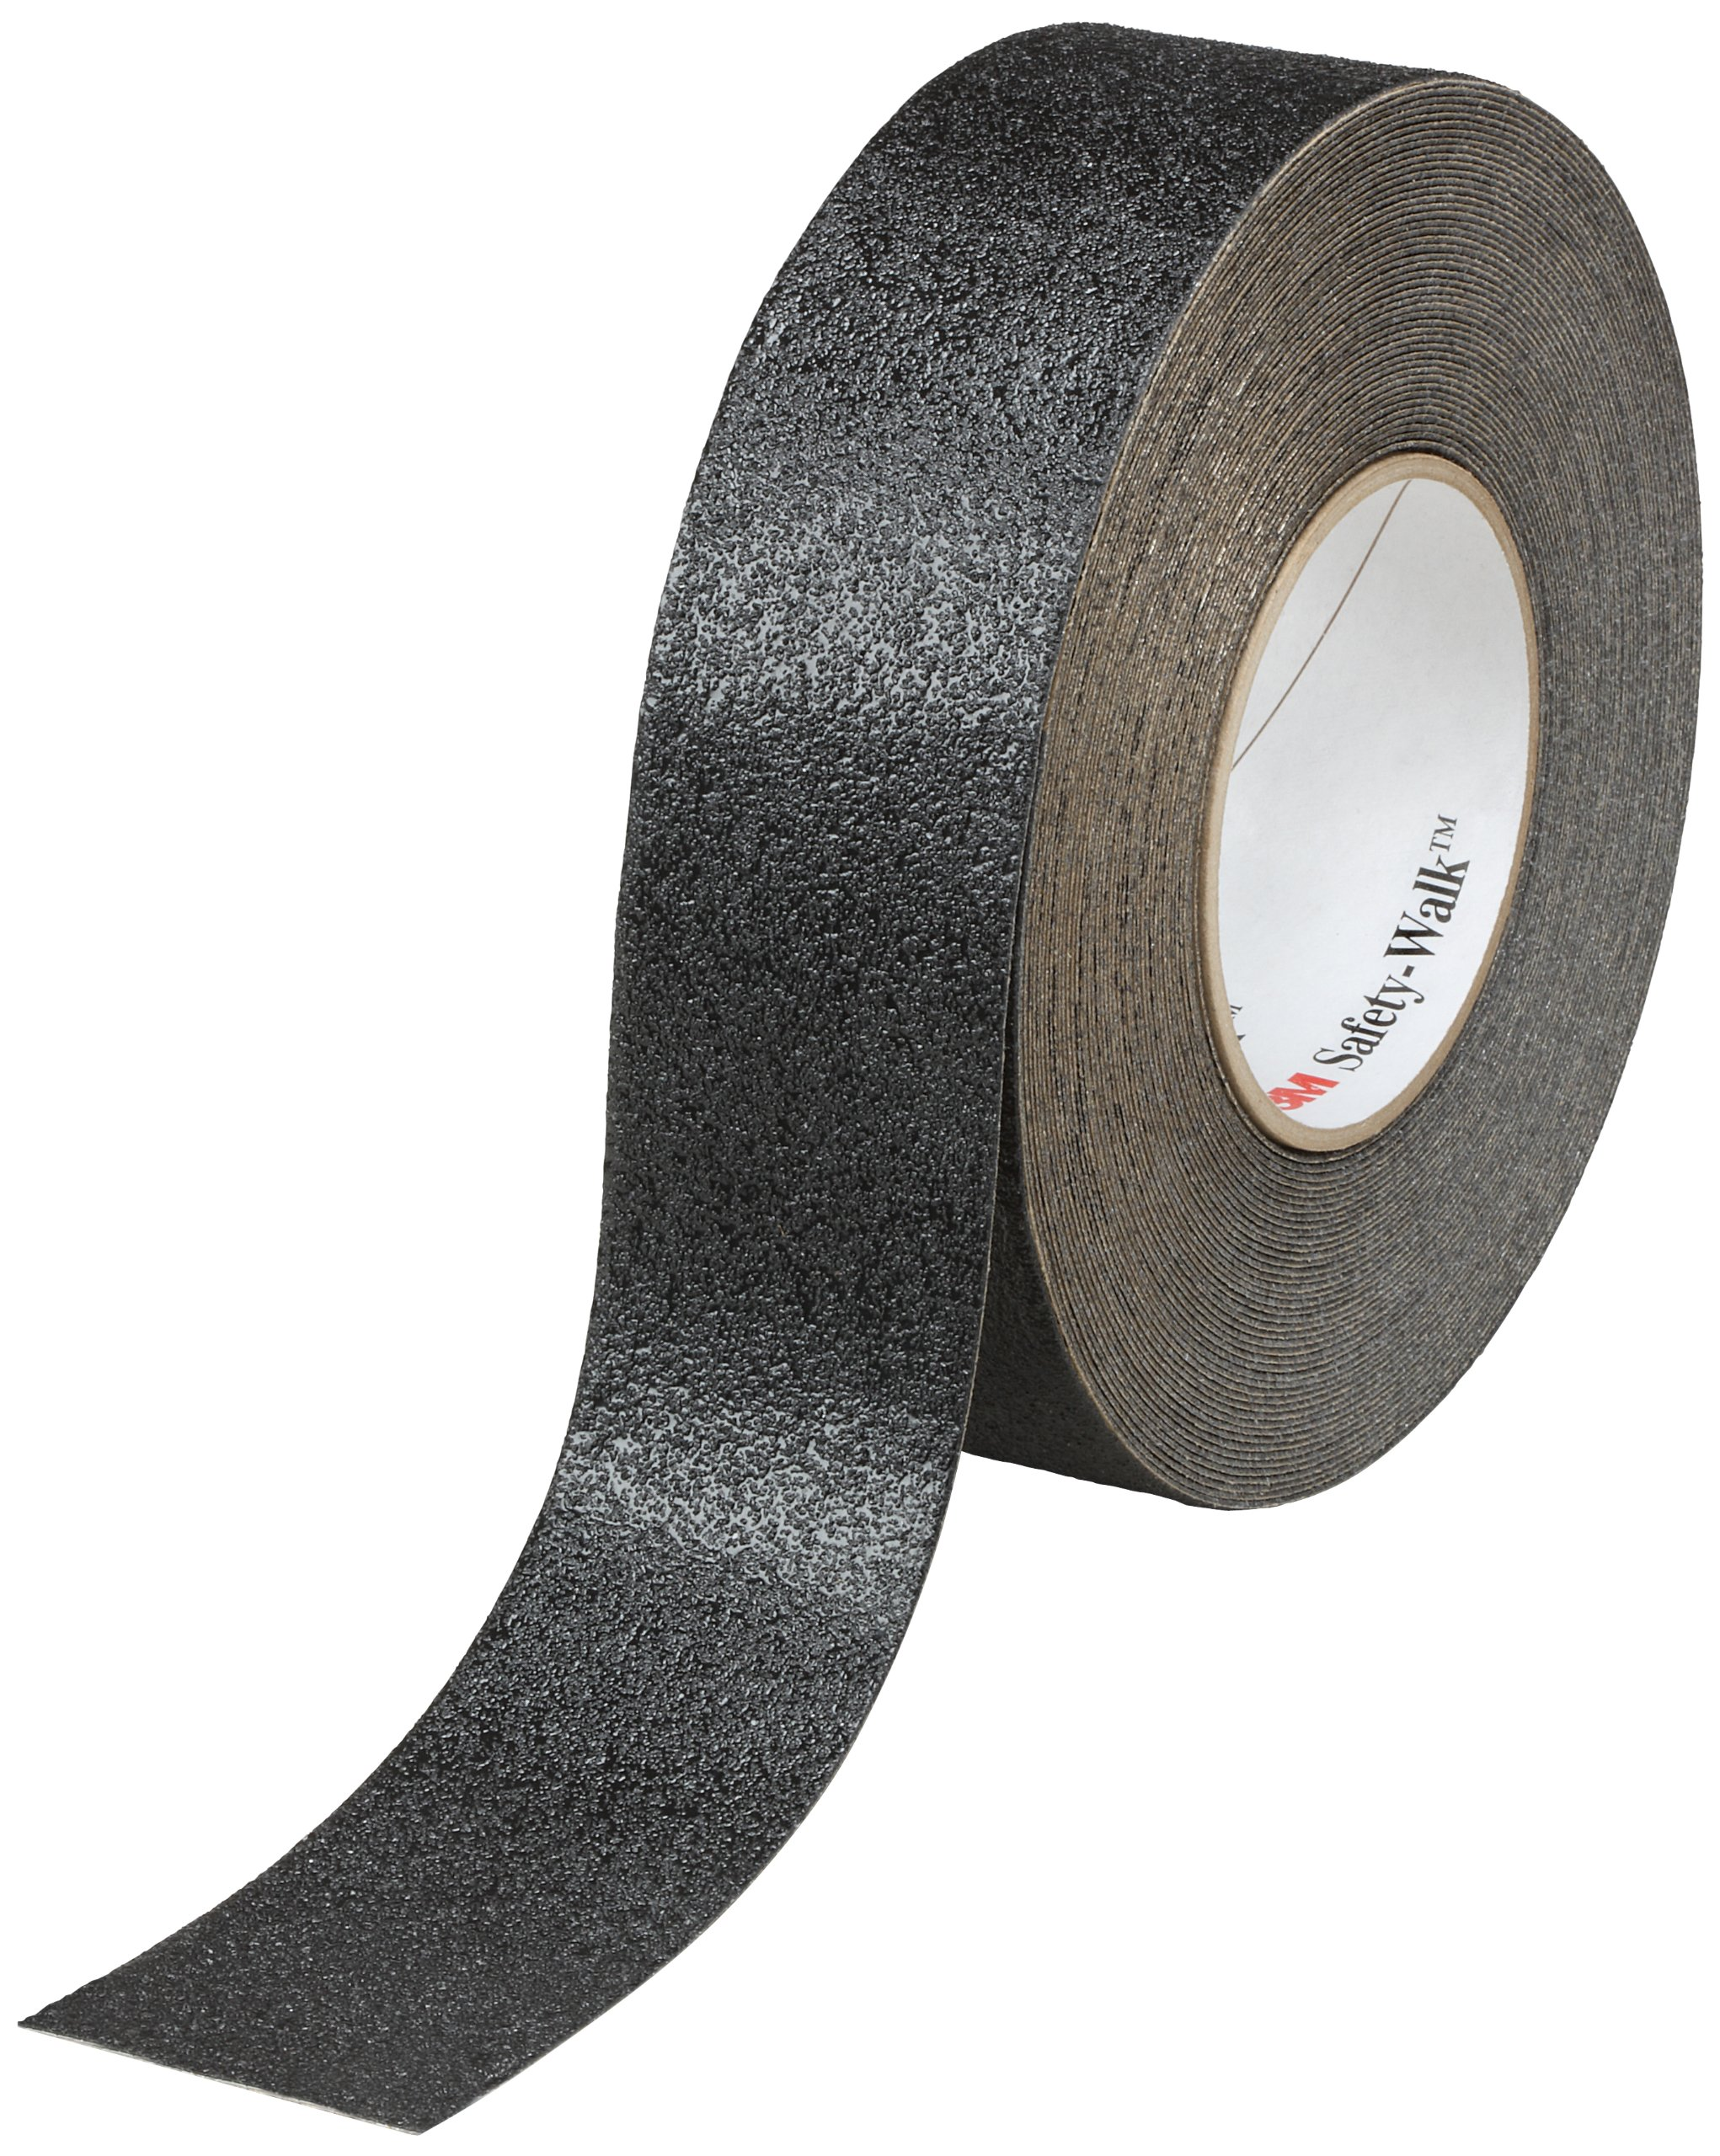 3M Safety-Walk Slip-Resistant Conformable Tapes and